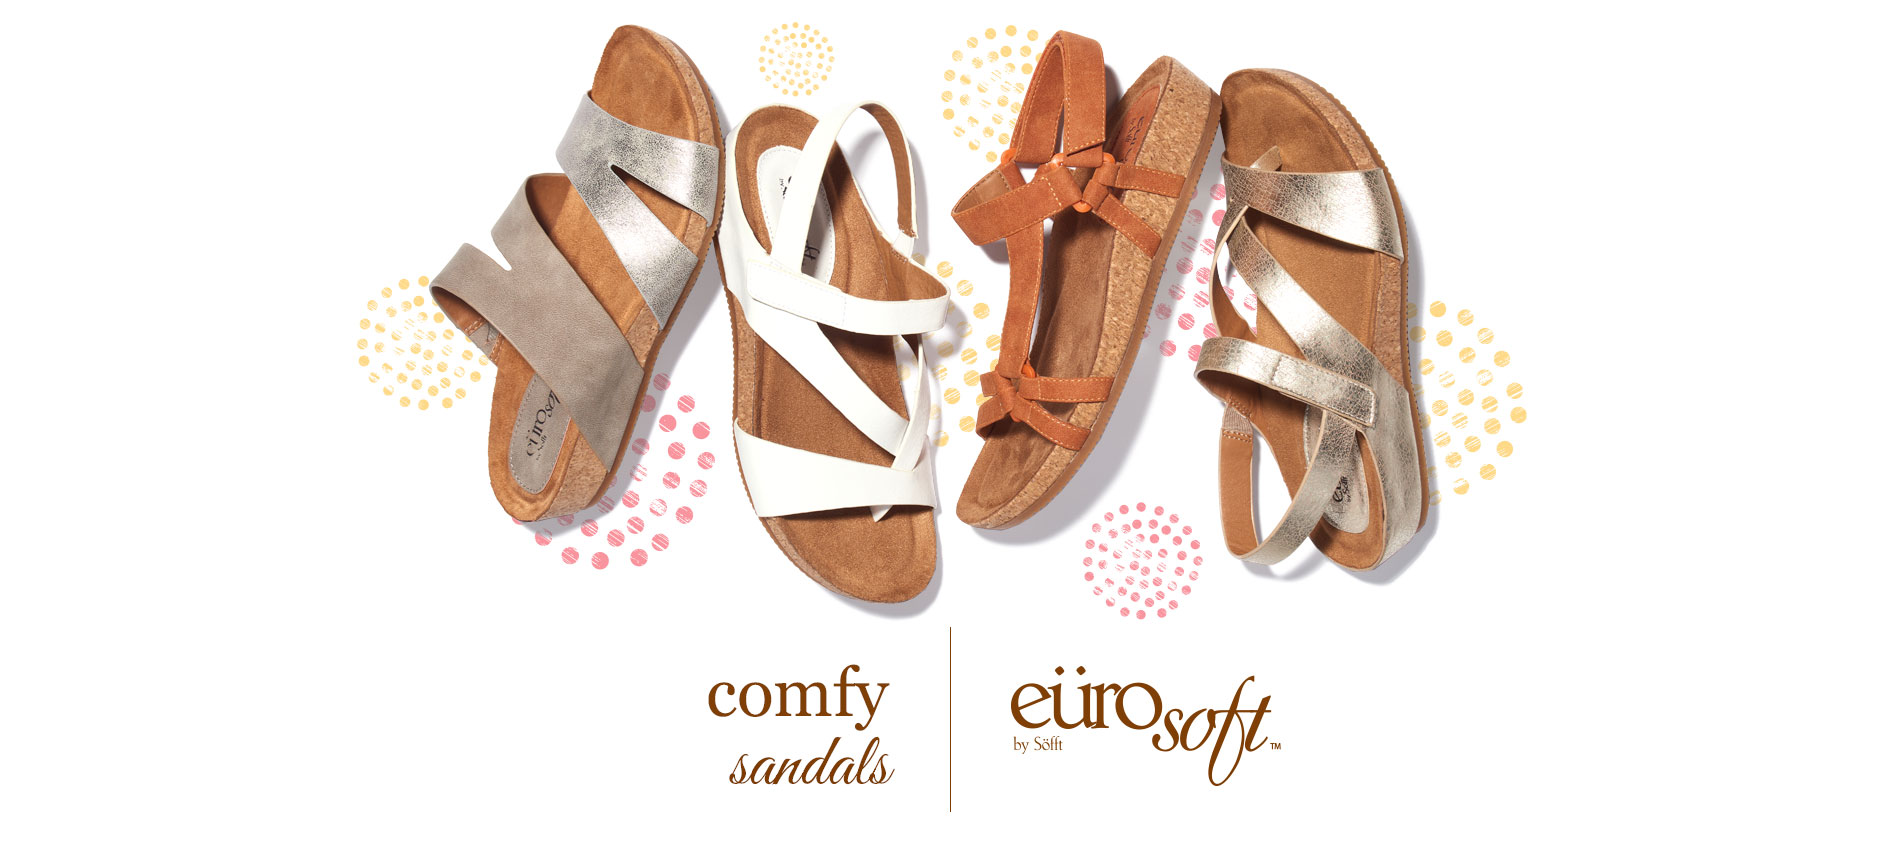 Comfy Sandals. Eurosoft by Sofft. Shop All Styles